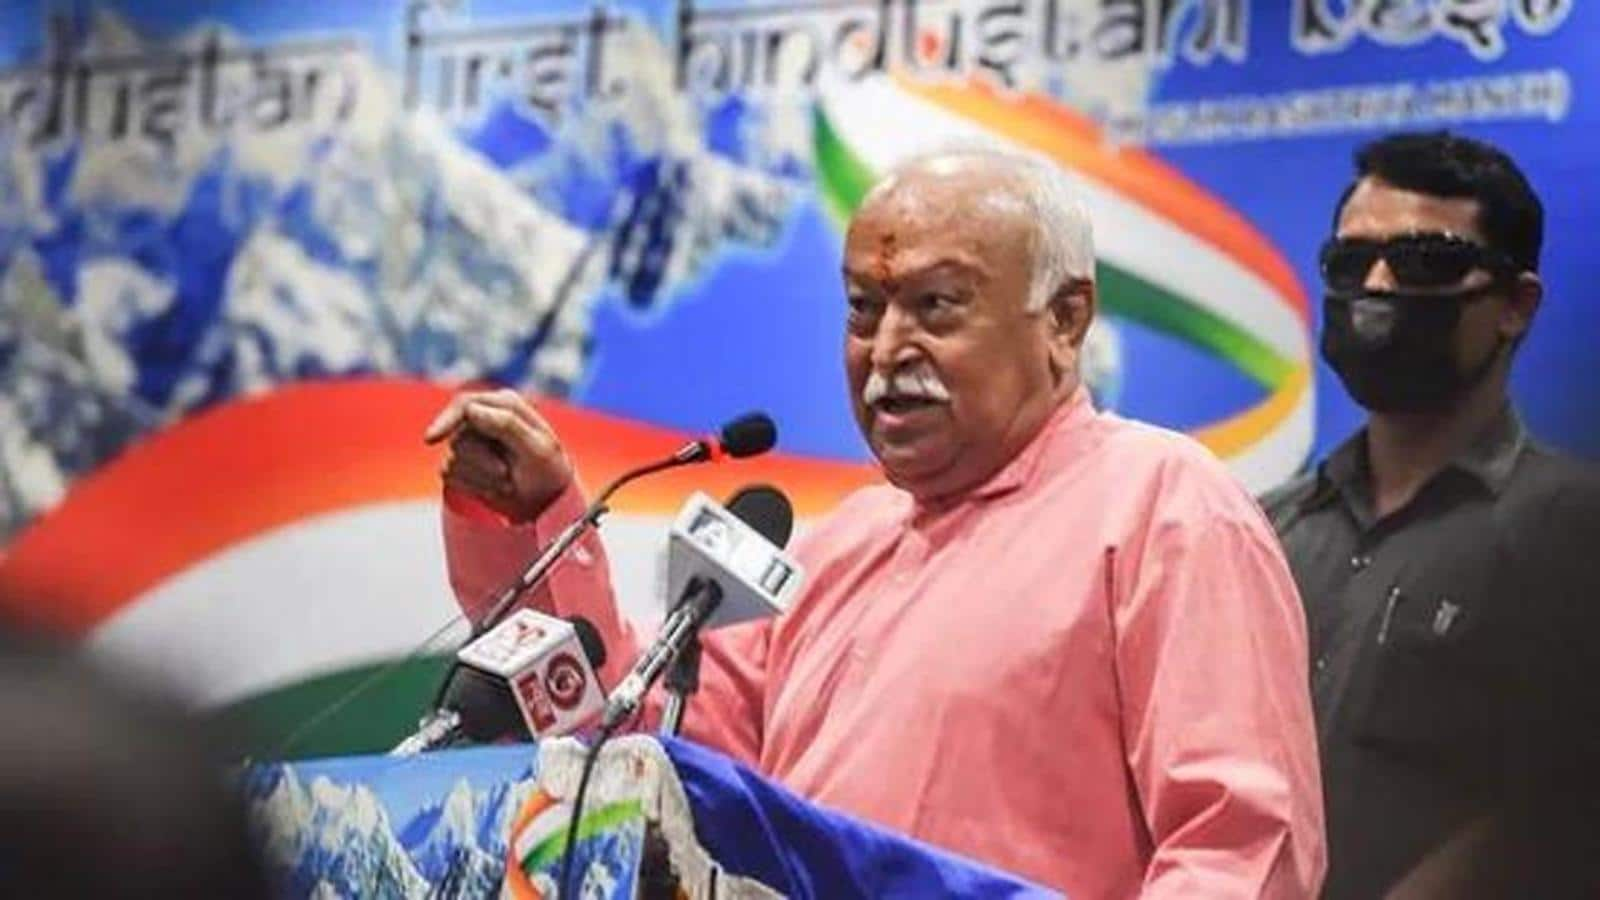 'Anyone who says Muslims should not live in India is not Hindu': Mohan Bhagwat